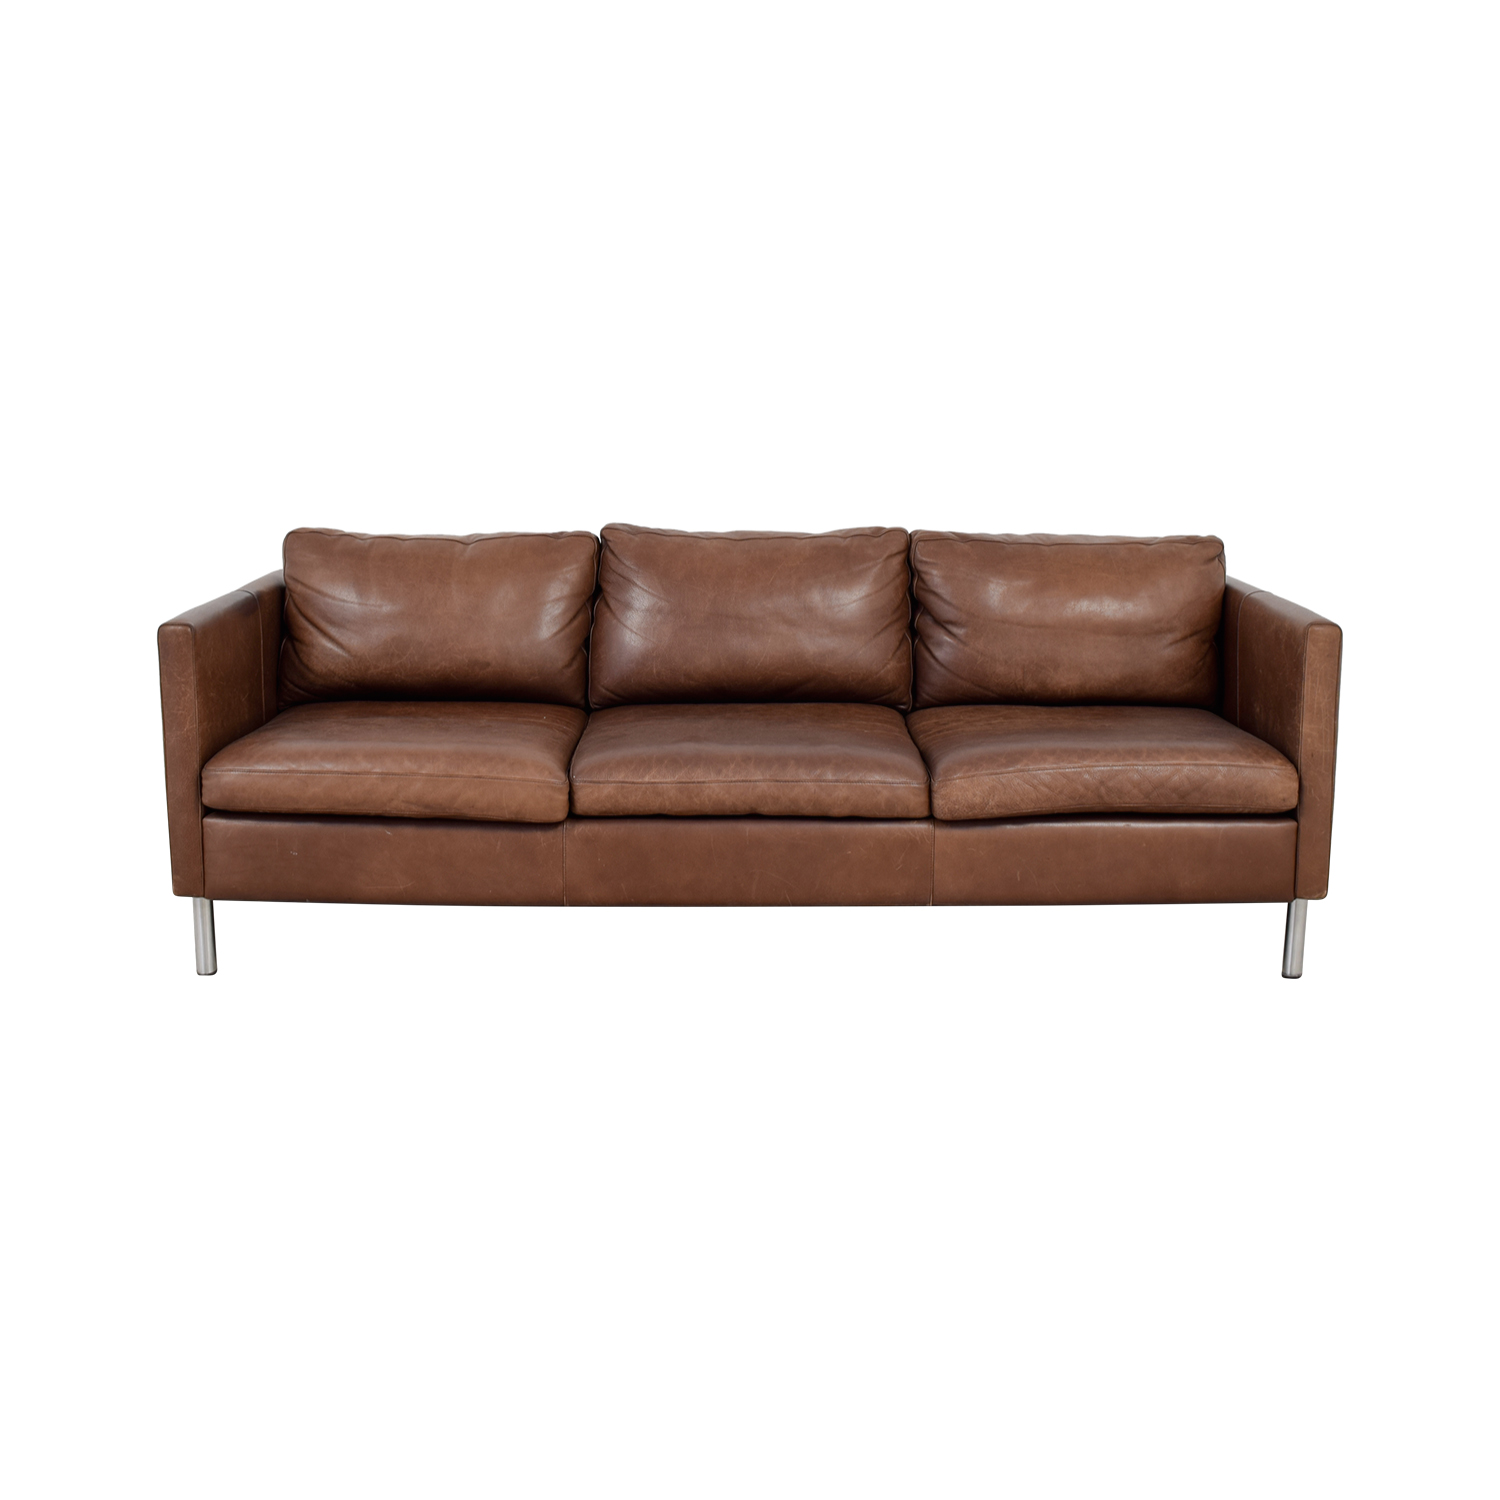 Room & Board Room & Board Jackson Brown Leather Three-Cushion Sofa second hand